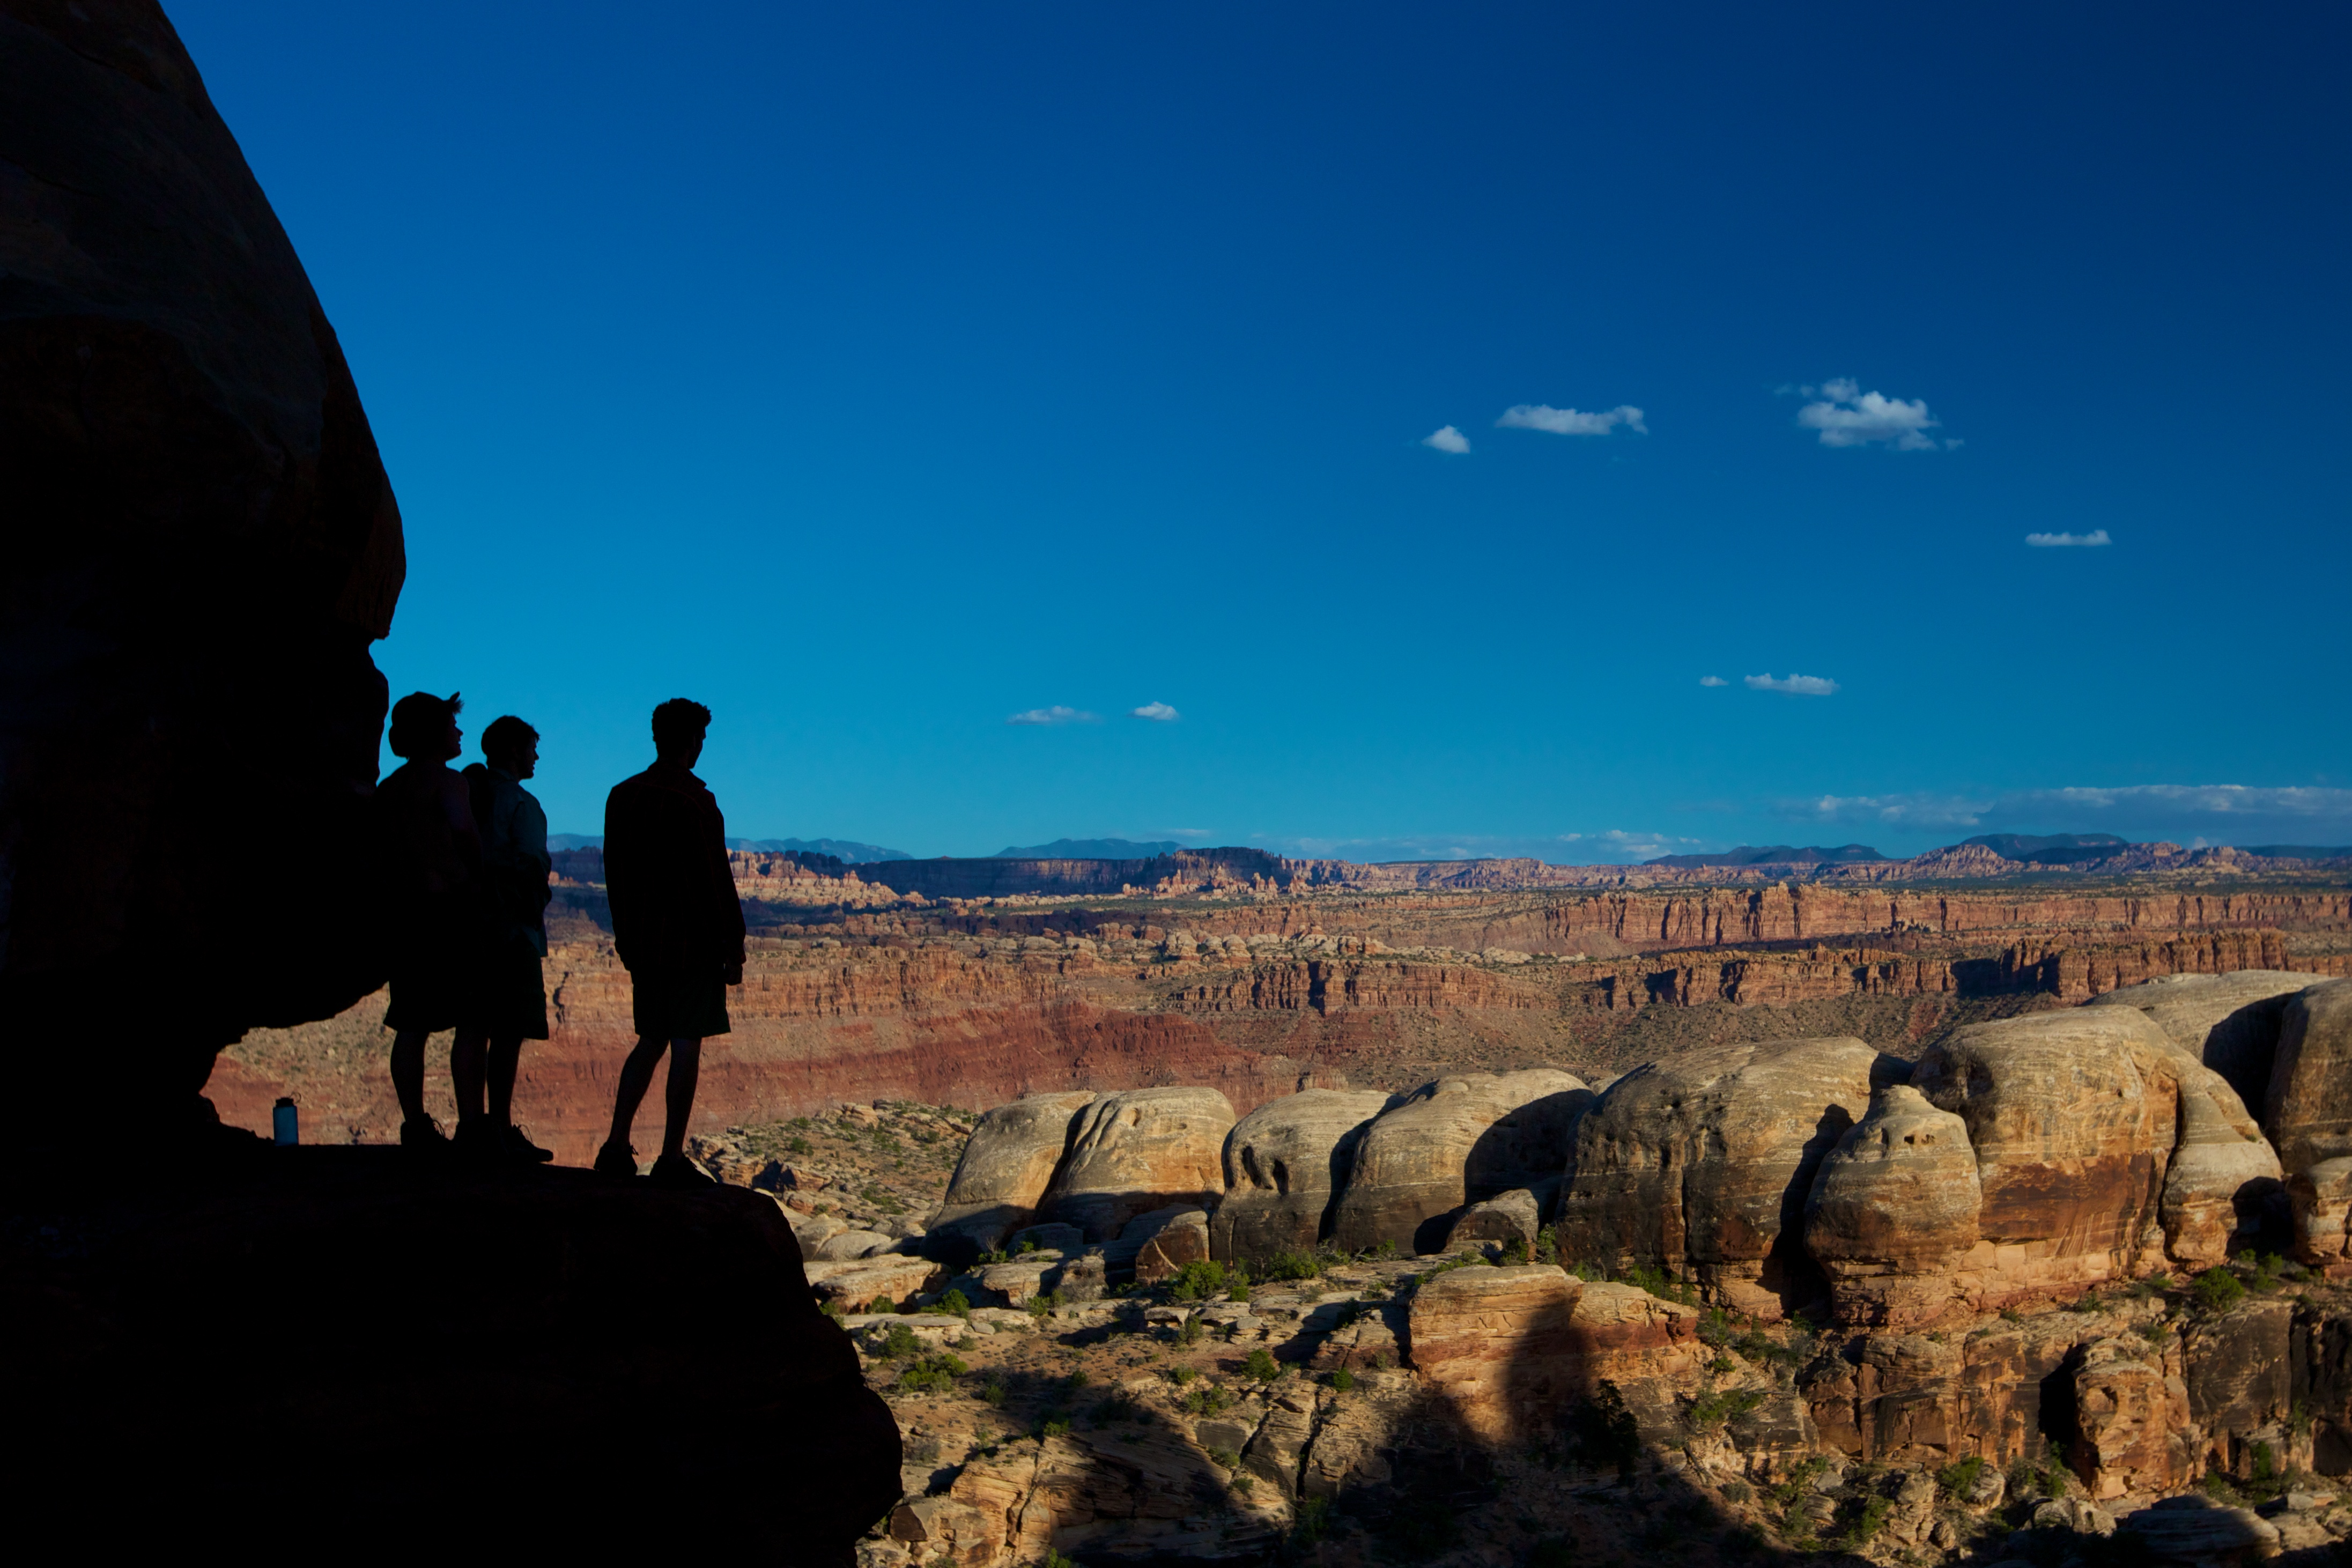 People looking out over desert view